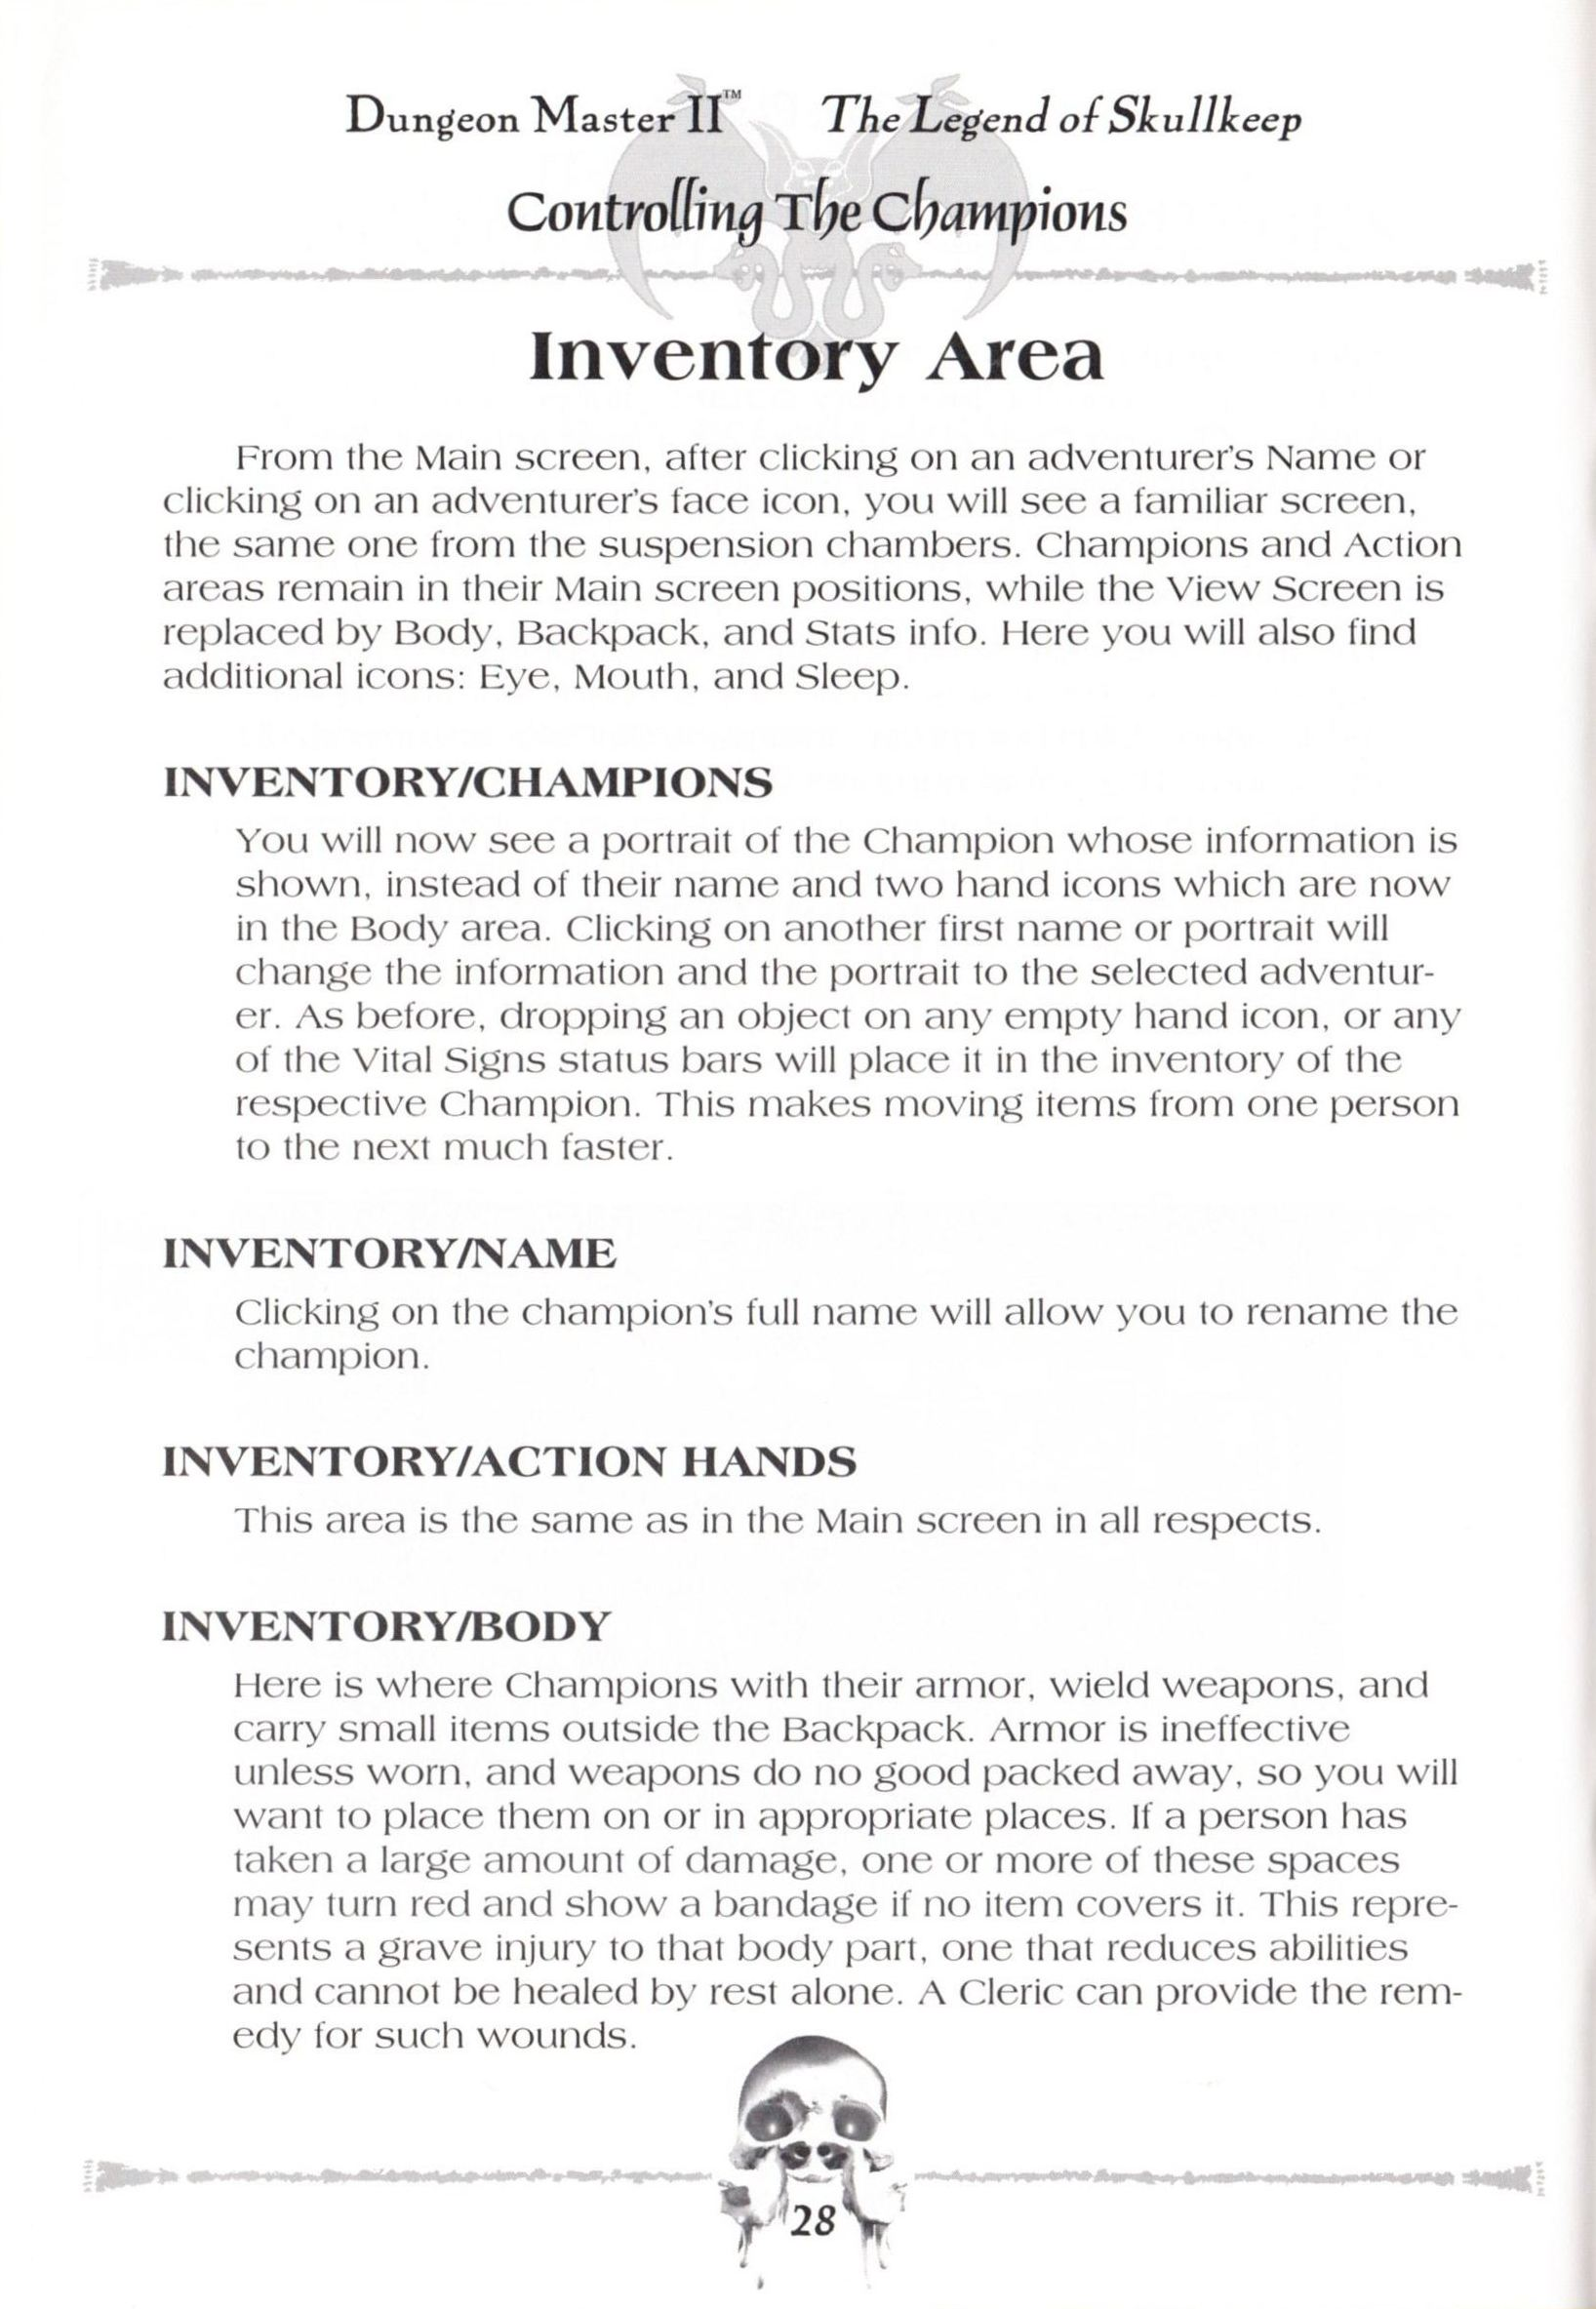 Game - Dungeon Master II - US - Macintosh - Manual - Page 030 - Scan